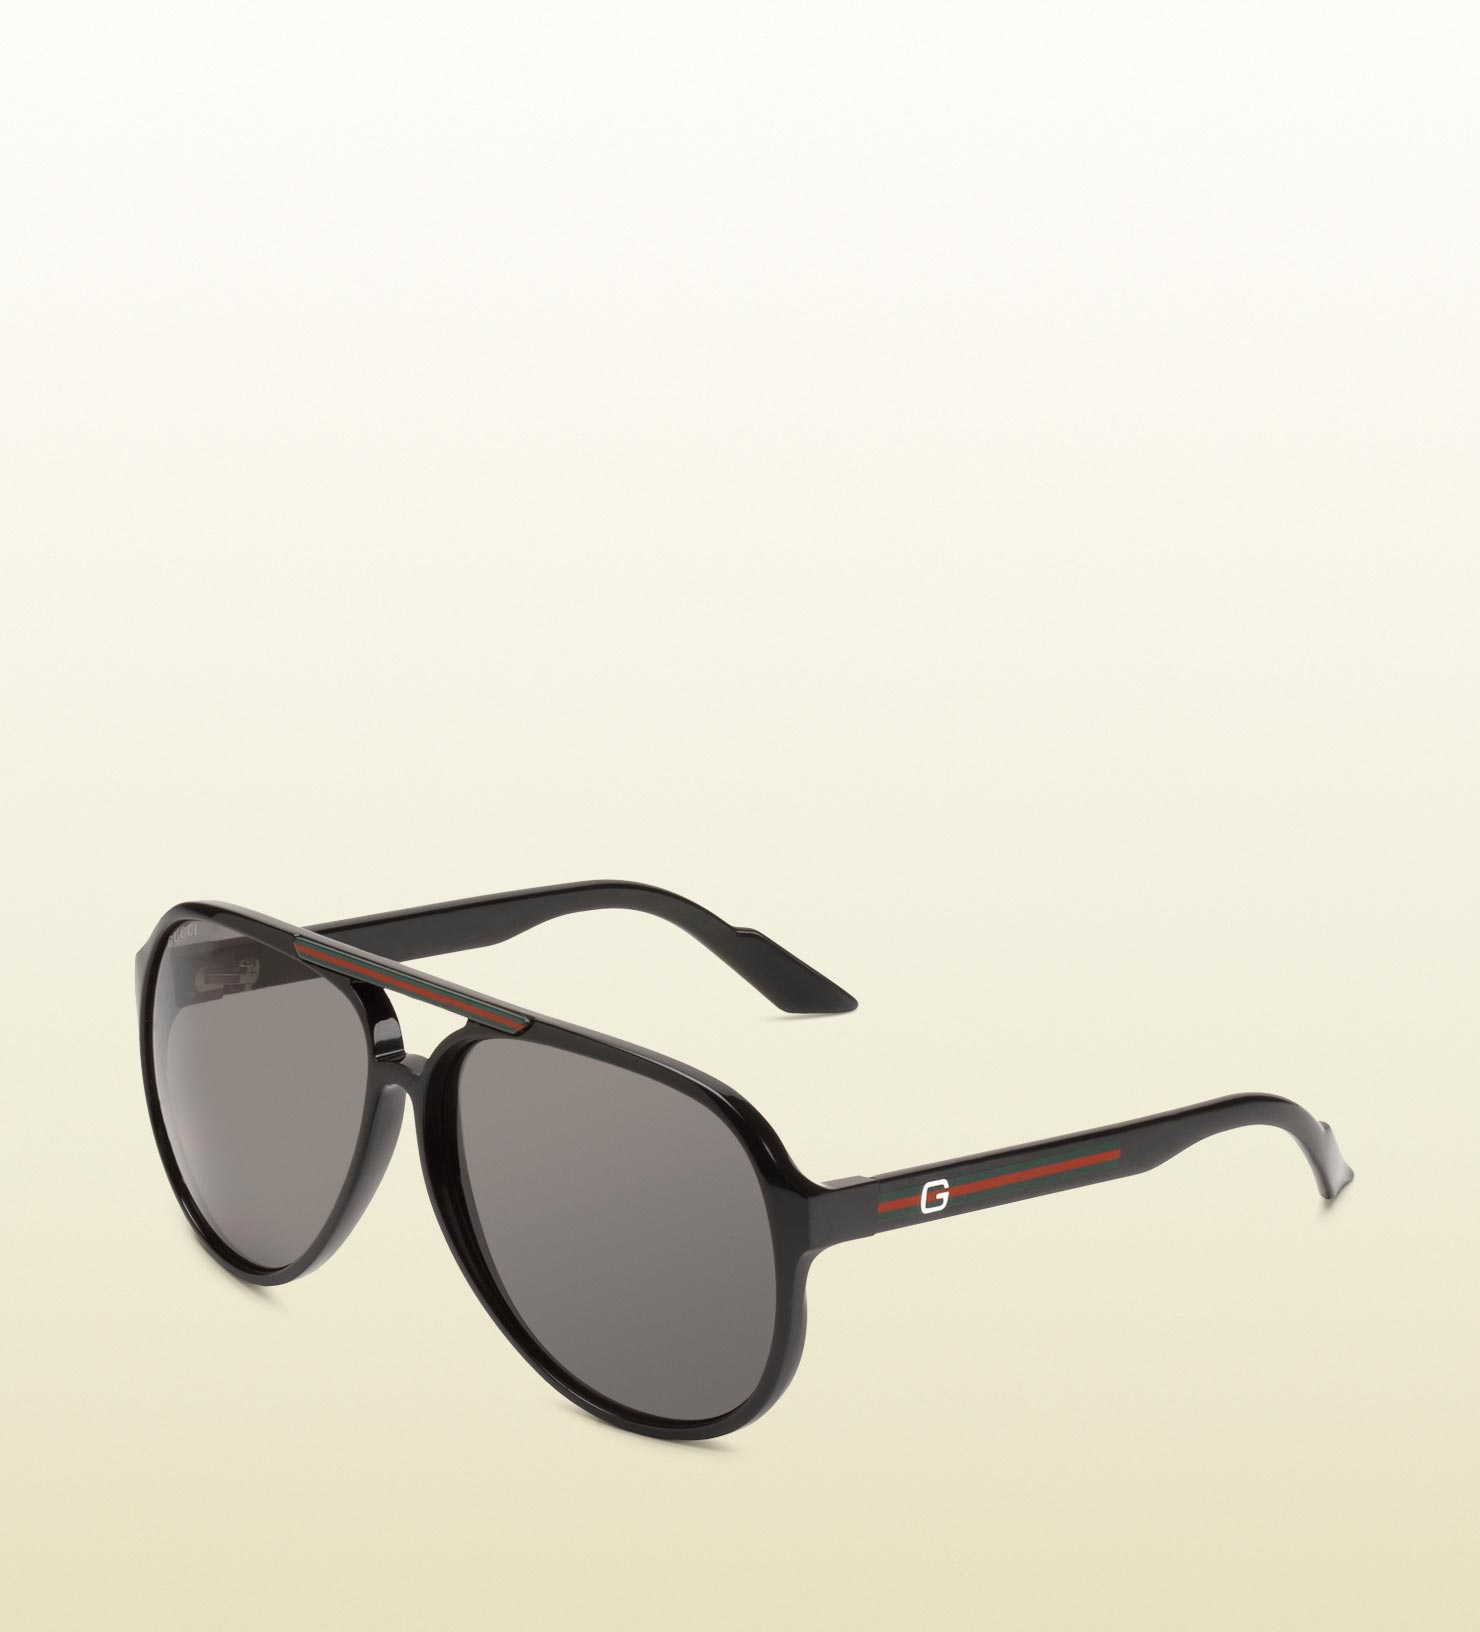 60284c56a98 Lyst - Gucci Medium Aviator Sunglasses With G Detail And Signature ...